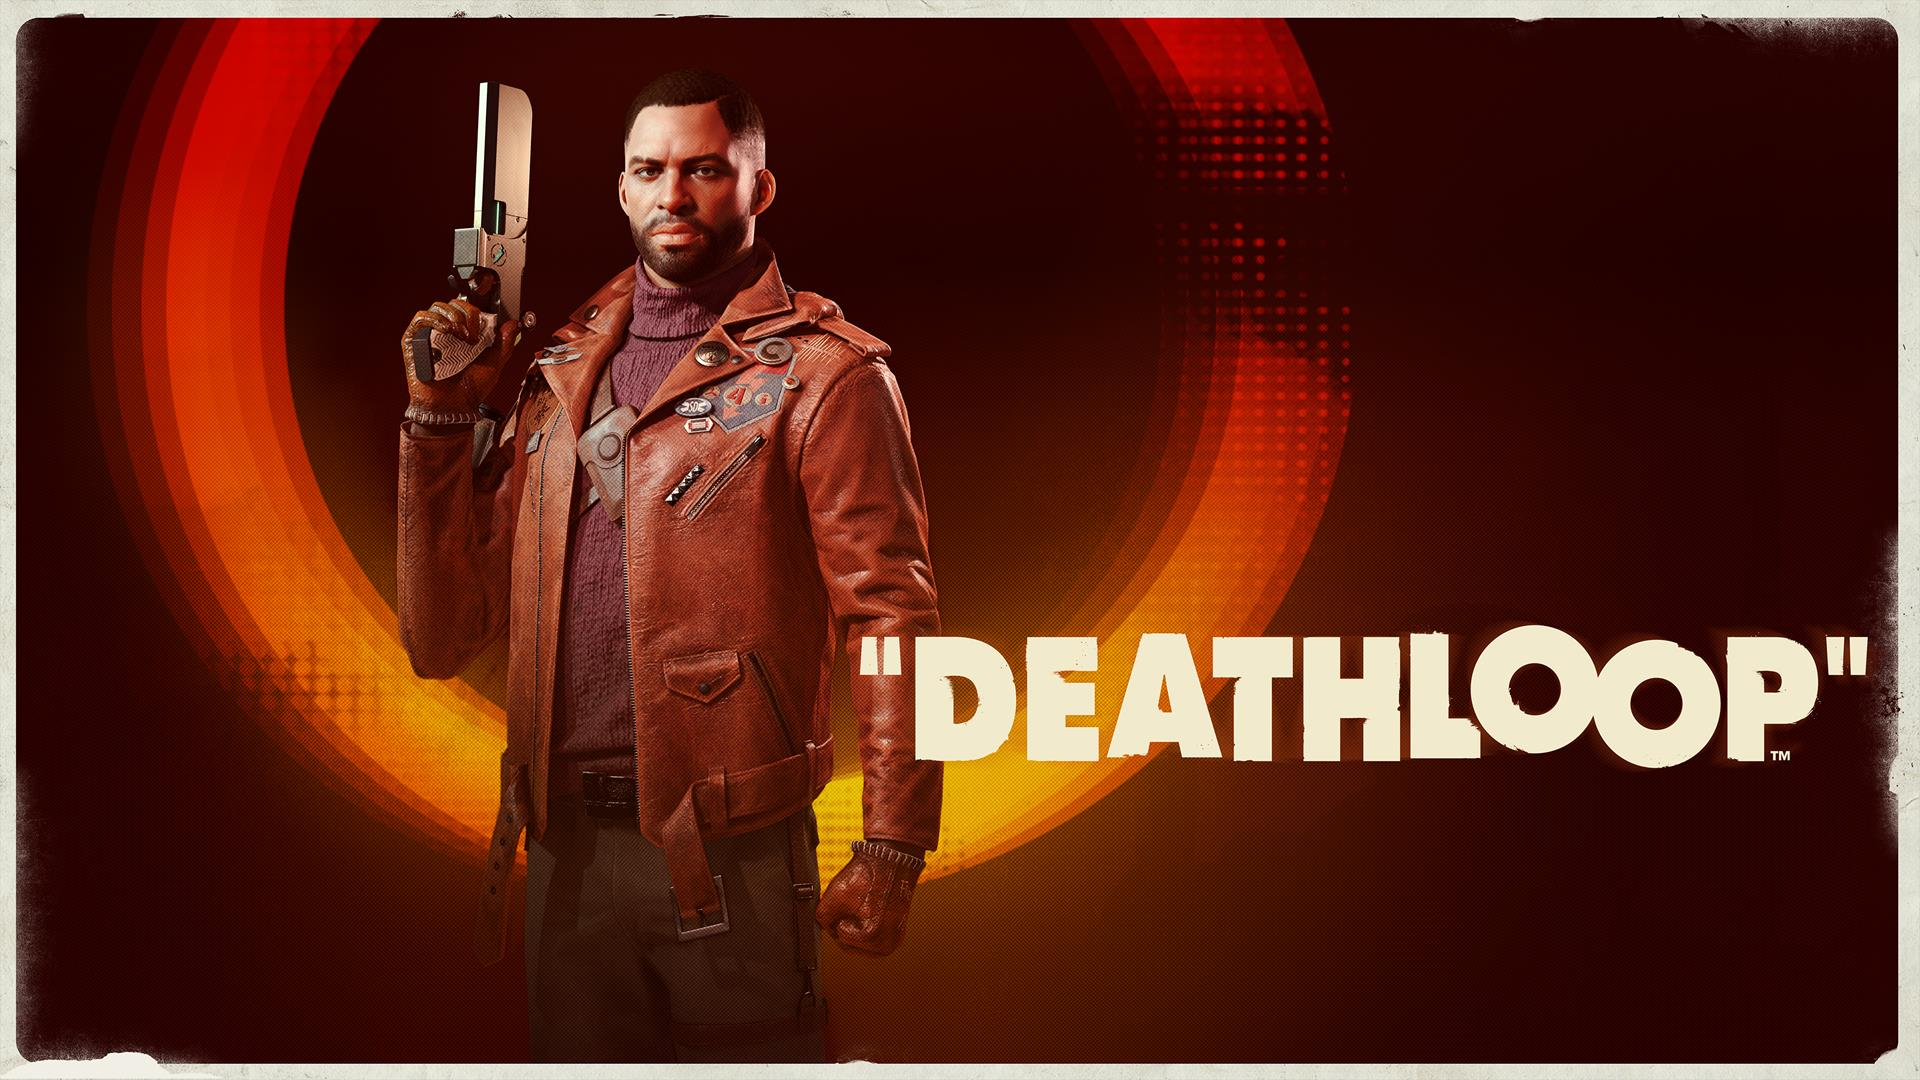 Deathloop's new PS5 trailer is about getting two targets in the same place at the same time - VG247